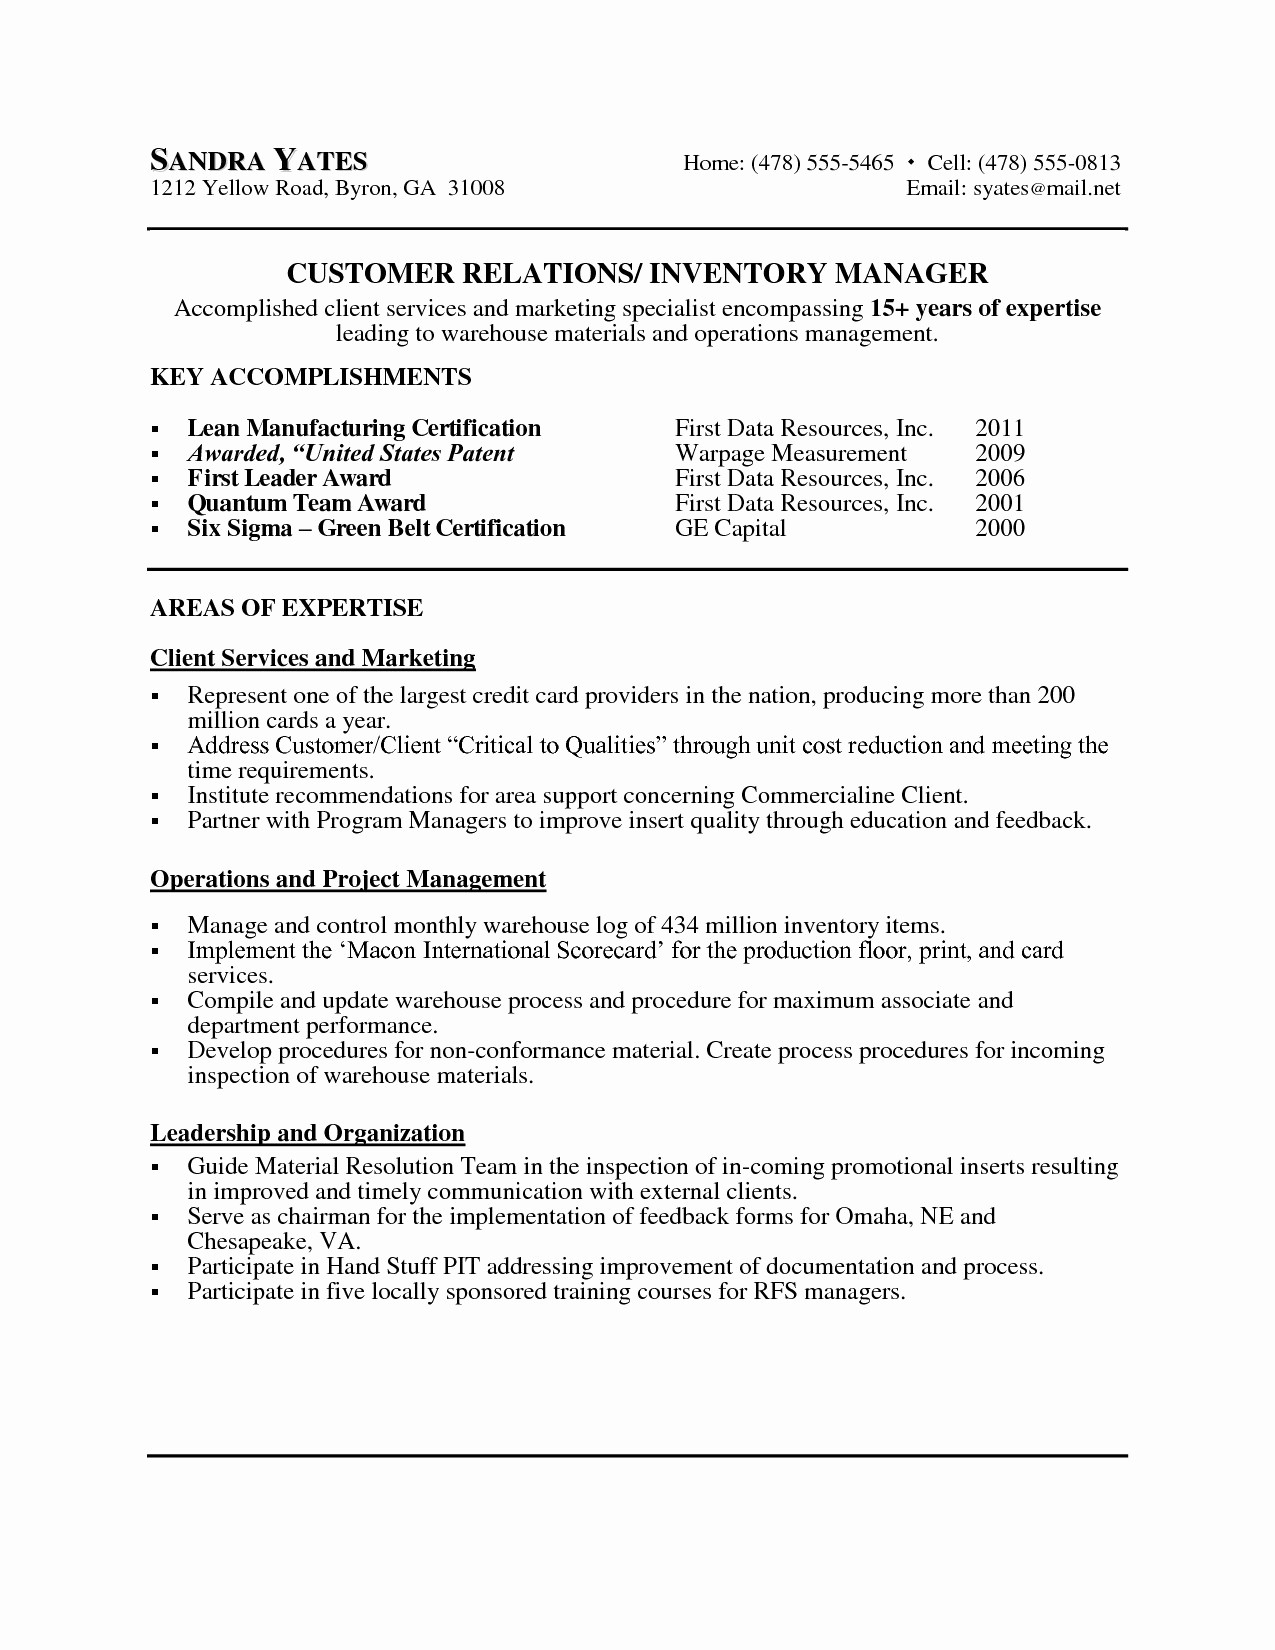 Food Prep Resume - Food Prep Resume Unique Resume Team Player atopetioa